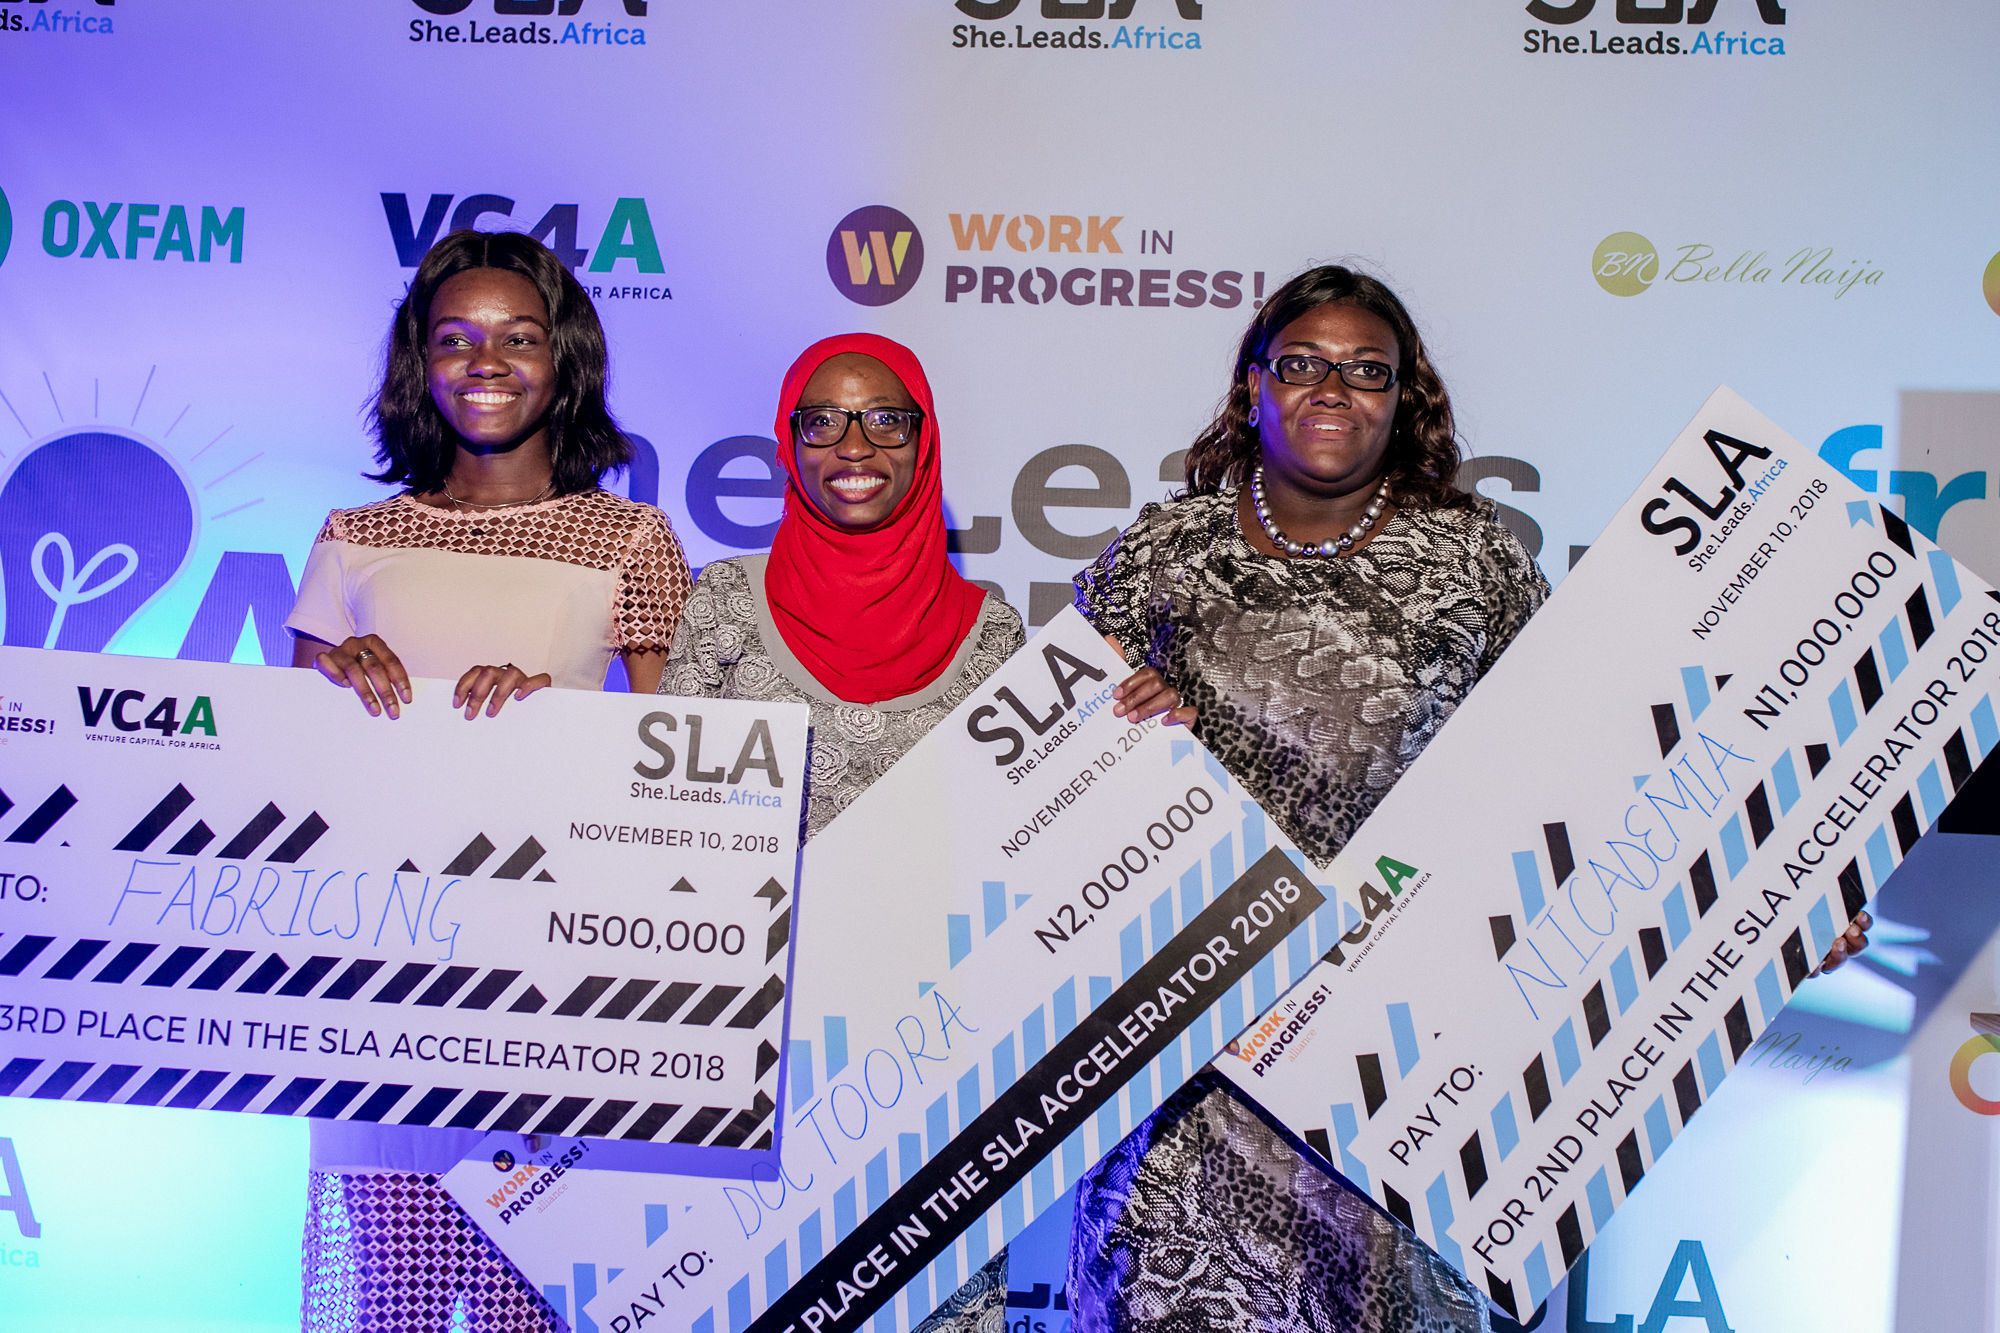 She Leads Africa High Growth Coaching Program 2021 for Women-led Businesses in Nigeria